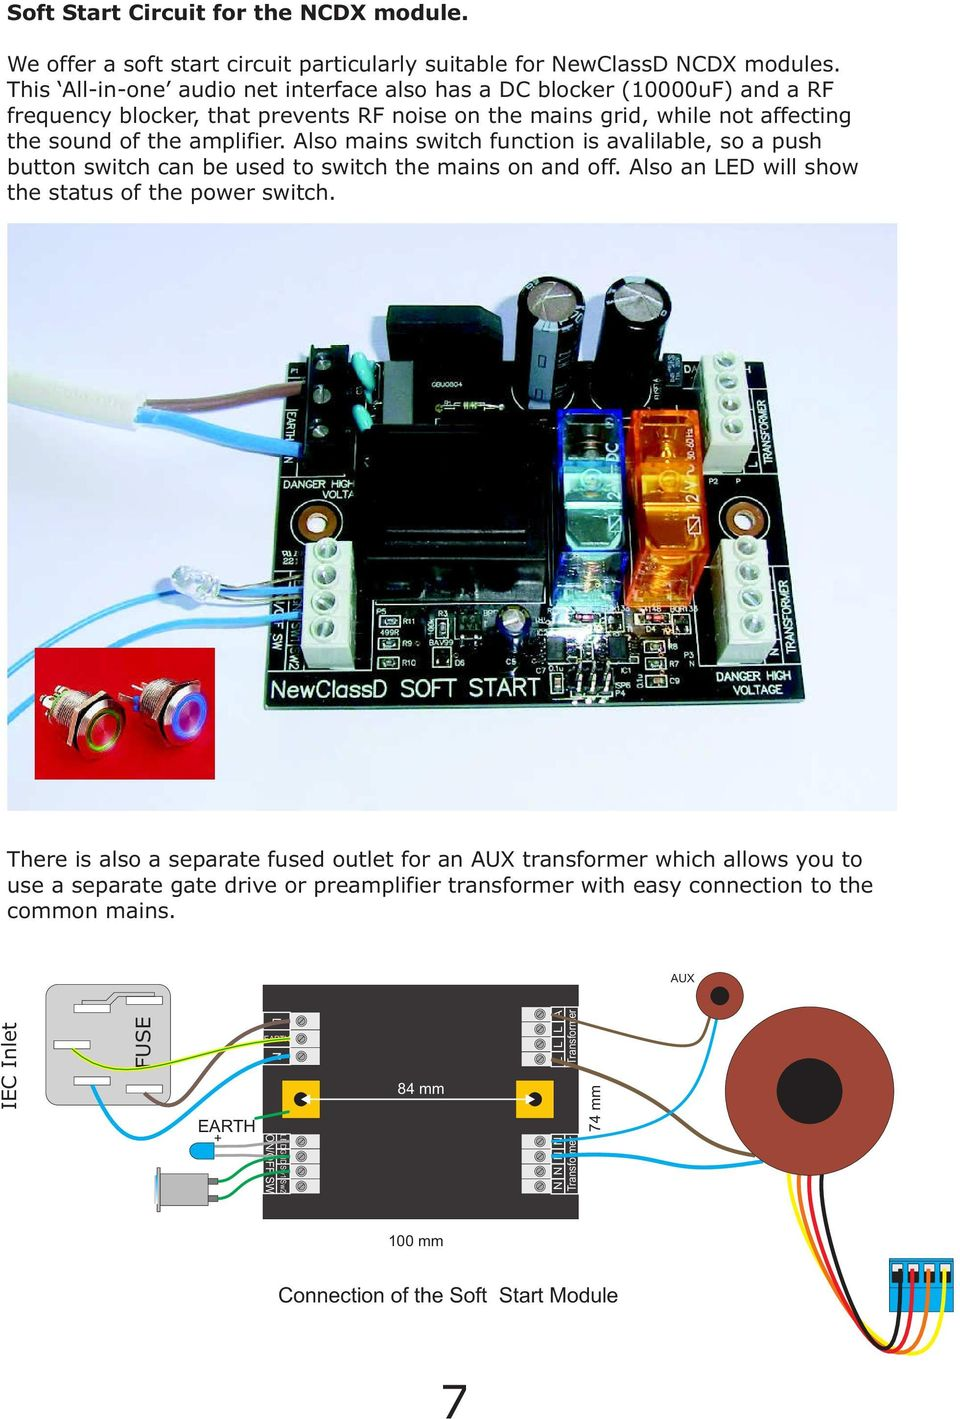 Newclassd Cookbook Ver Ncdx Advanced Class D Amplifier For Diy The Complete Circuit Will Be Powered By An 212v 24va Transformer Also Mains Switch Function Is Avalilable So A Push Button Can Used To